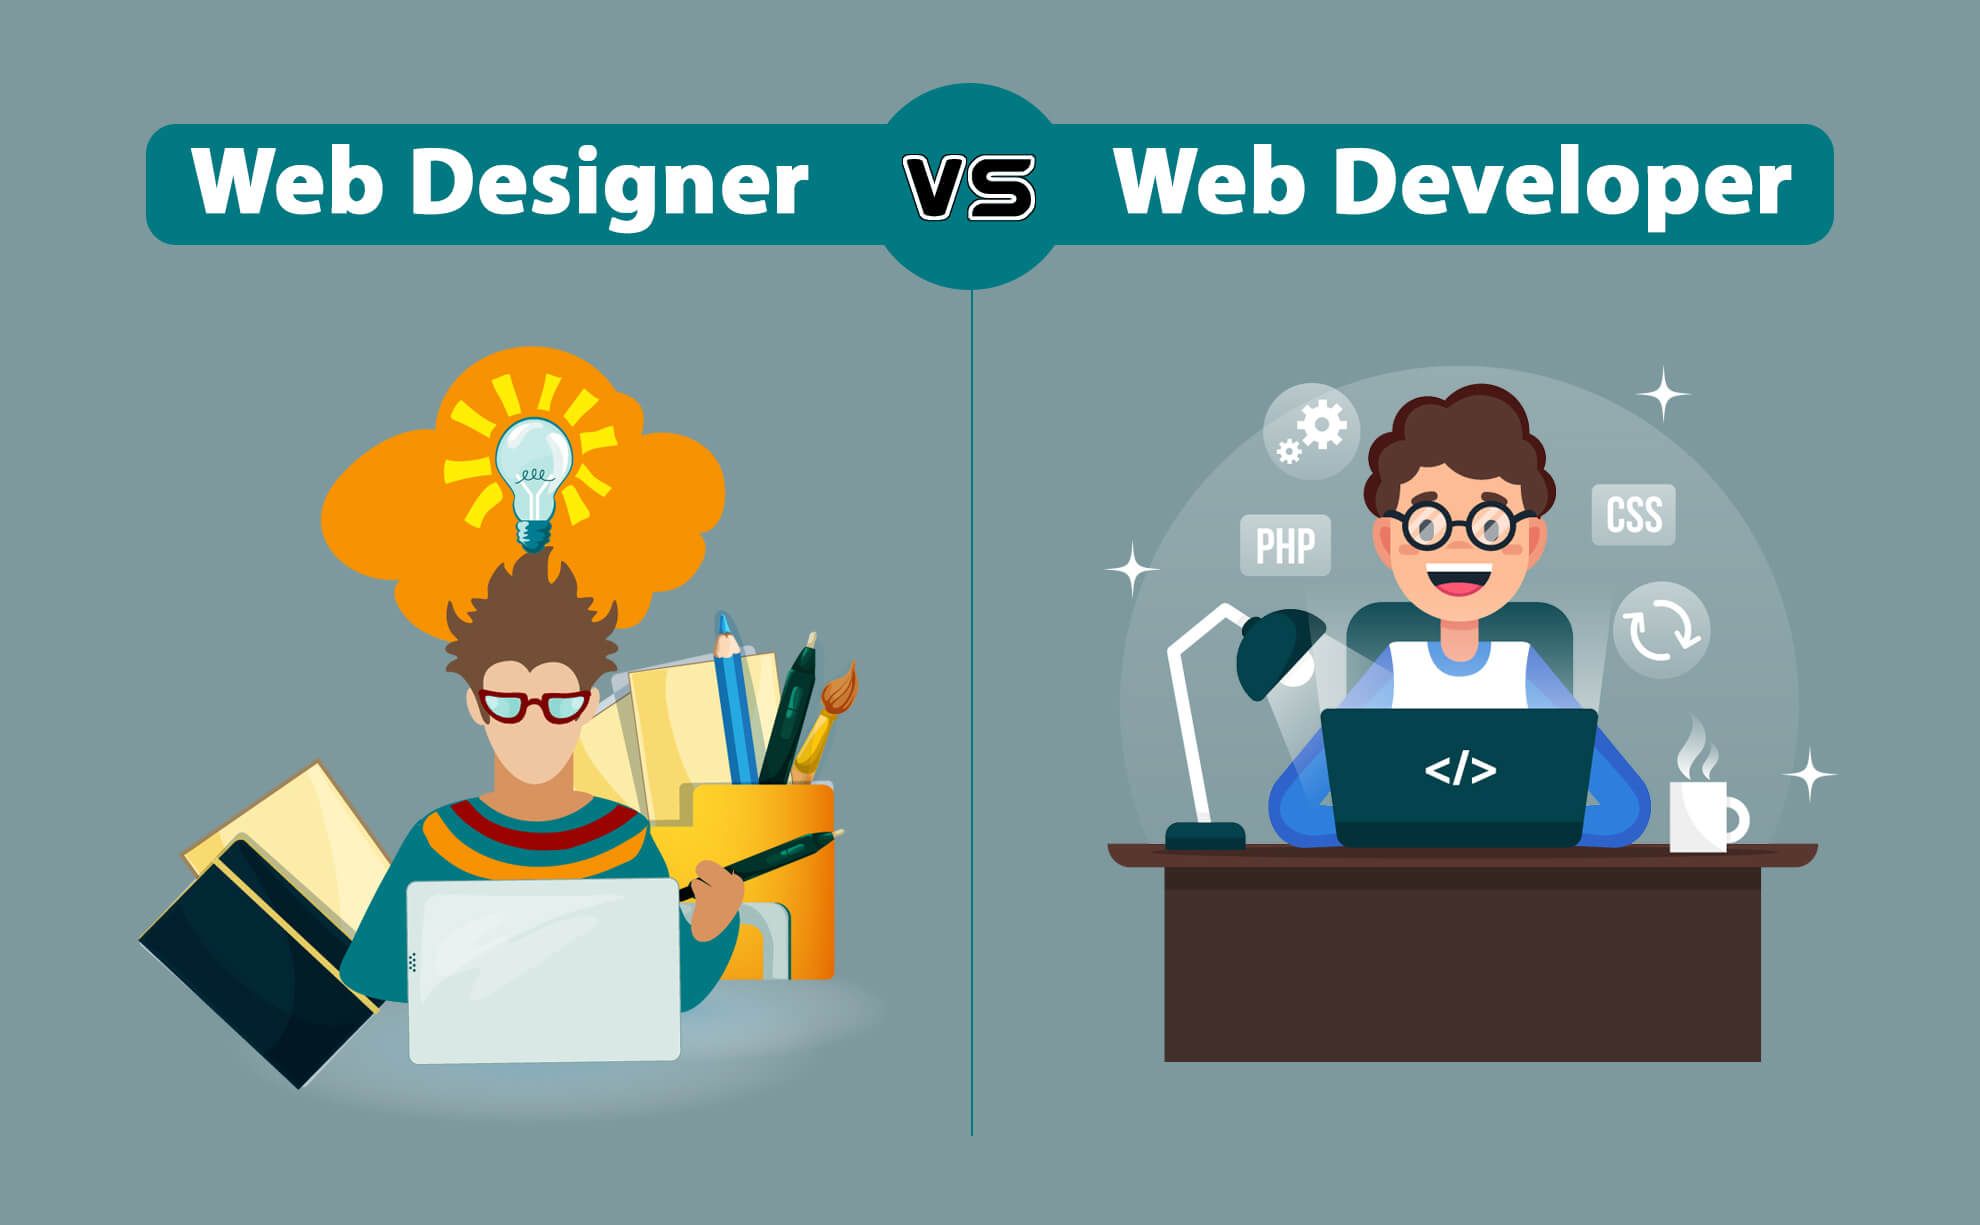 What Are The Differences Between Web Developers And Web Designers